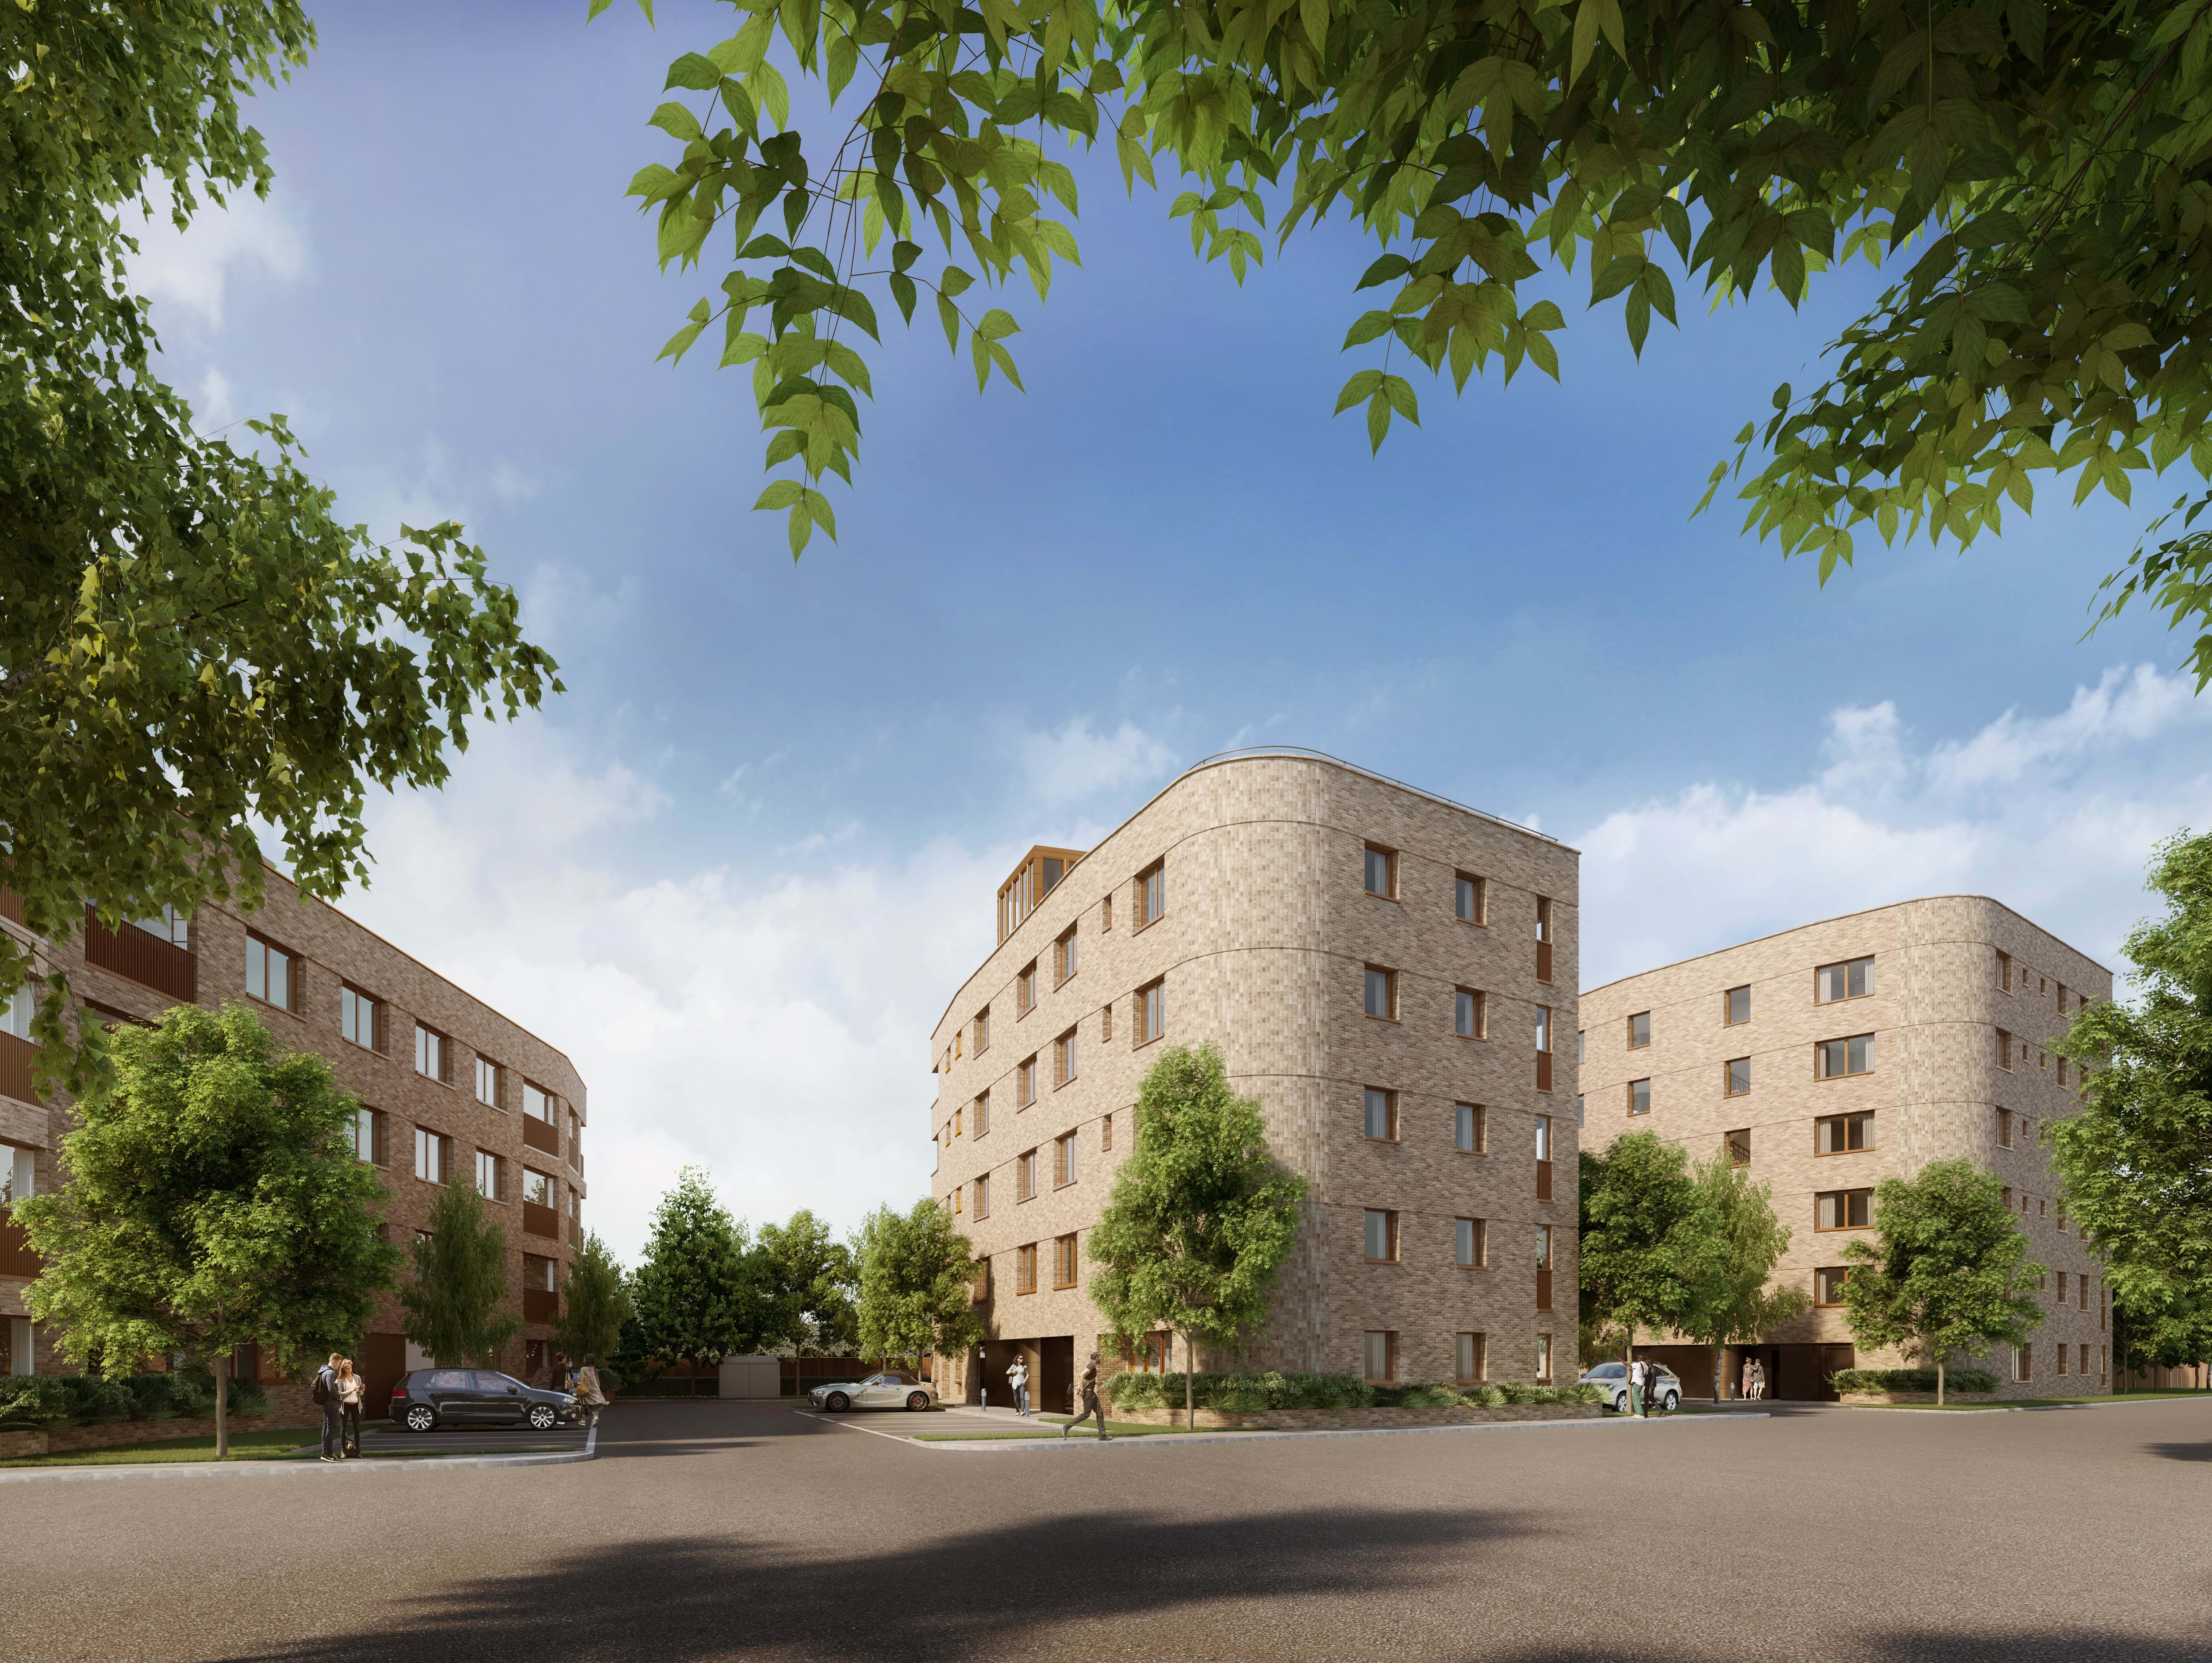 Ternary Place, Shared Ownership in Ealing